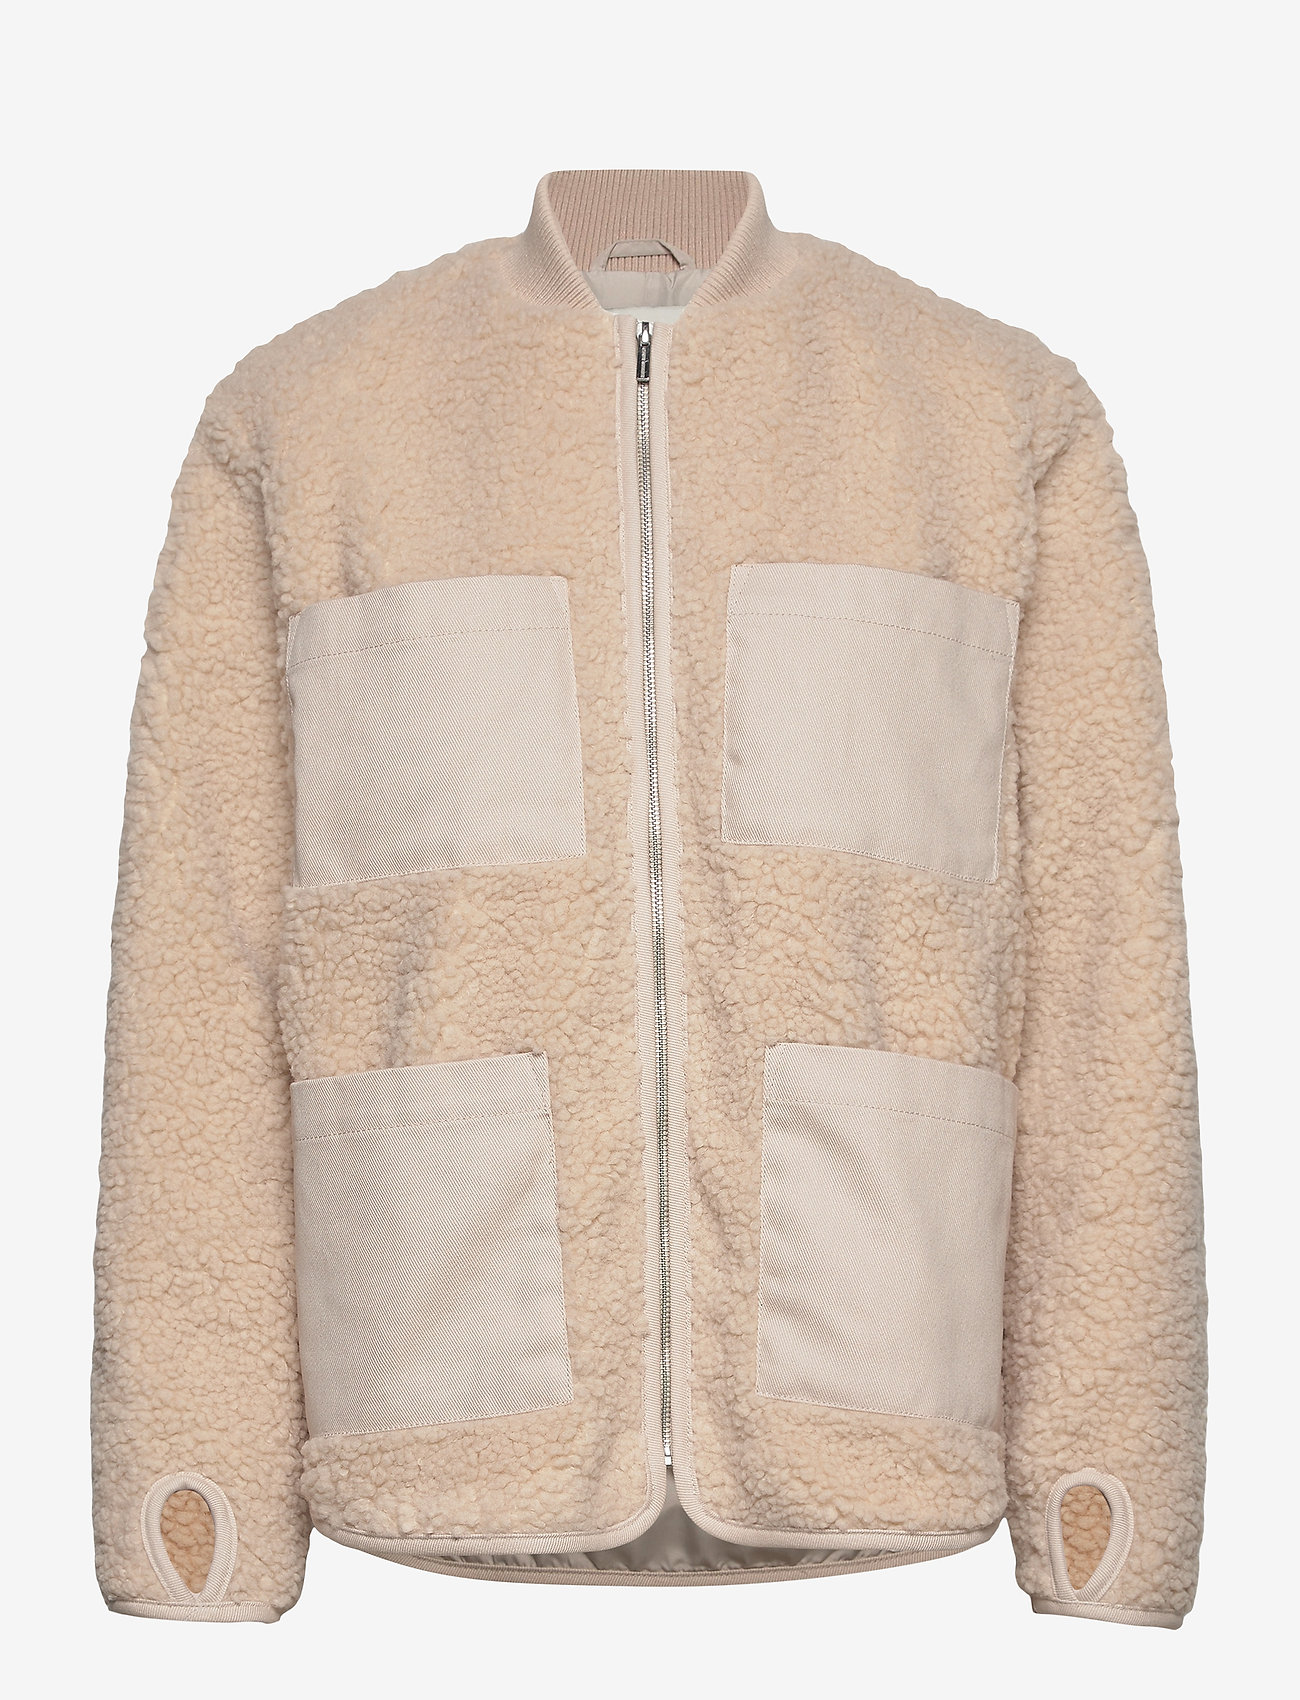 Carin Wester - Row - faux fur - offwhite - 1